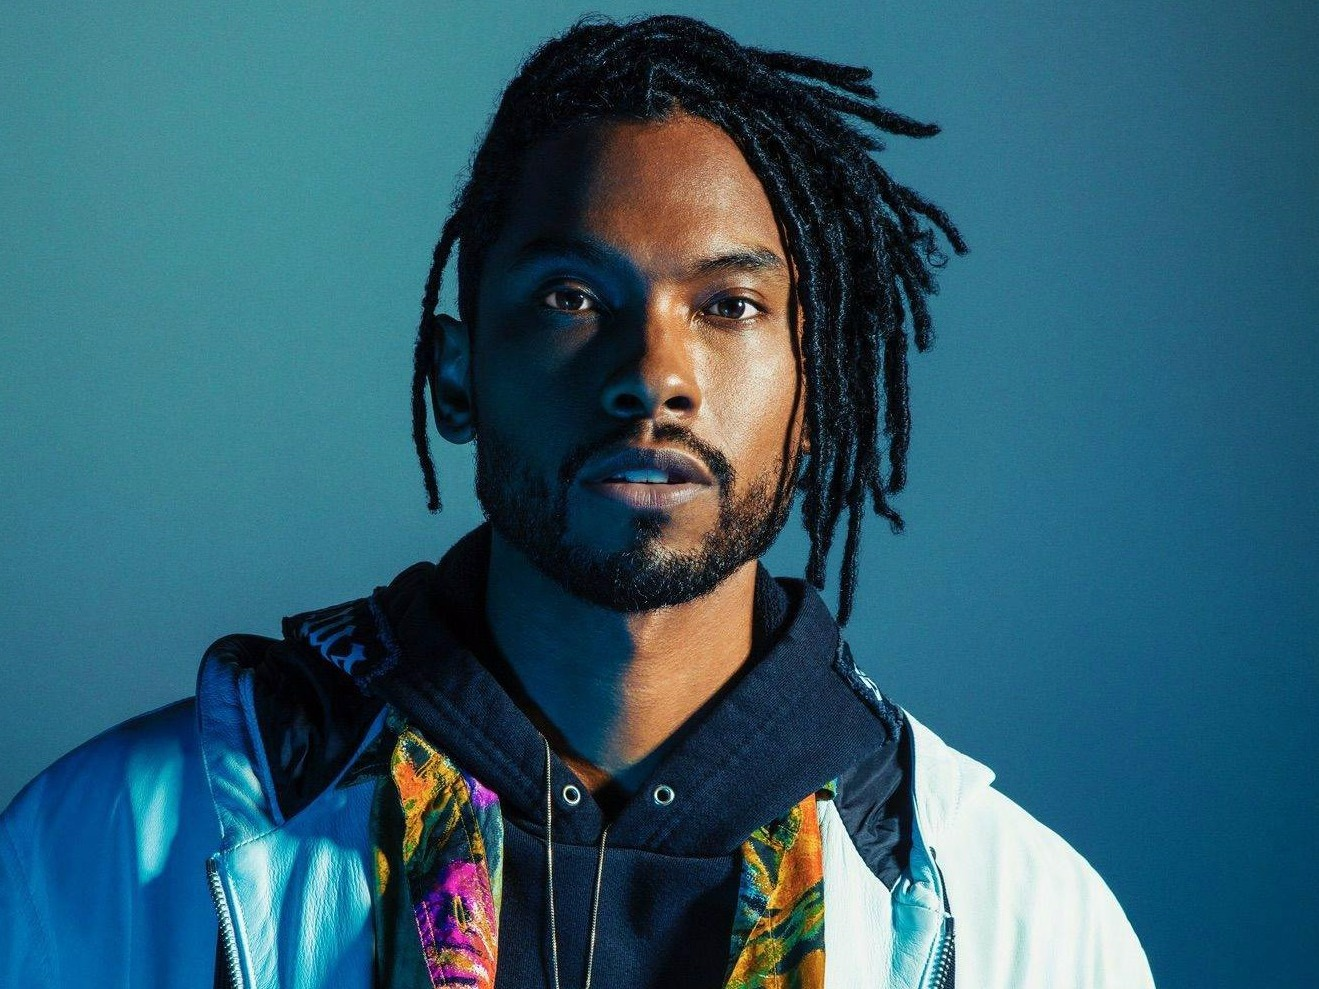 SONG OF THE DAY: 'Pineapple Skies' by Miguel